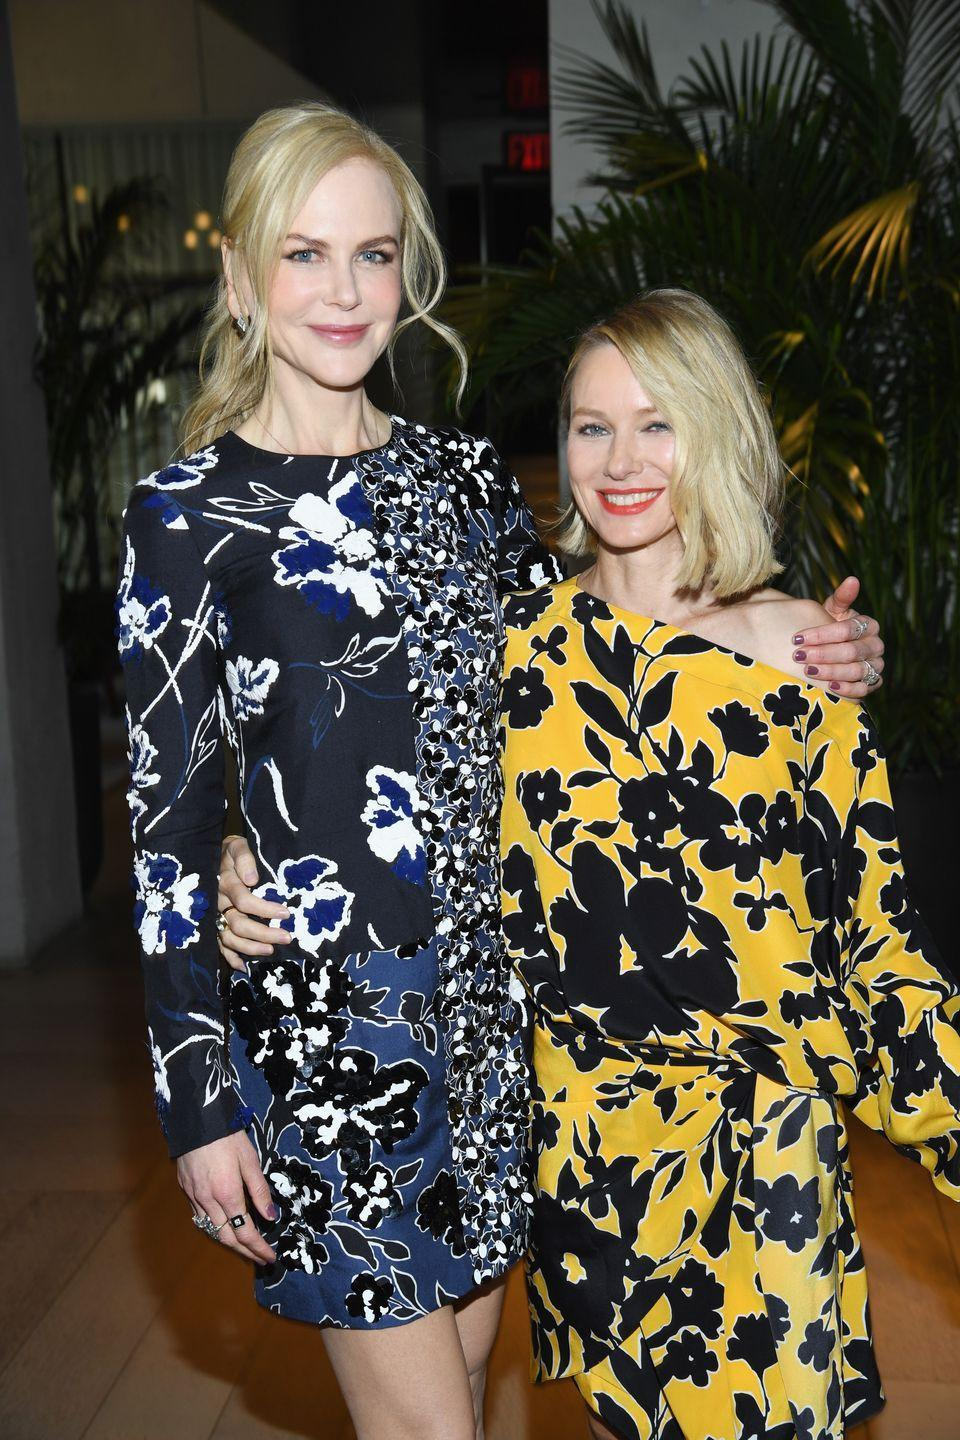 "<p>Aussie starlets Nicole Kidman and Naomi Watts have a friendship that goes all the way back to when they were just teenagers attending North Sydney Girls' High School in Australia. Post-school, the actresses bonded on the set of <em>Flirting</em>, with the 1991 film forging the close relationship that they have today.</p><p>""We've gone through a lot together over a significant amount of time. That history binds you,"" Watts told <em><a href=""https://people.com/movies/naomi-watts-talks-friendship-with-nicole-kidman/"" rel=""nofollow noopener"" target=""_blank"" data-ylk=""slk:People"" class=""link rapid-noclick-resp"">People</a></em> about her ties with Kidman. ""We have a strong respect and love for one another.""</p>"